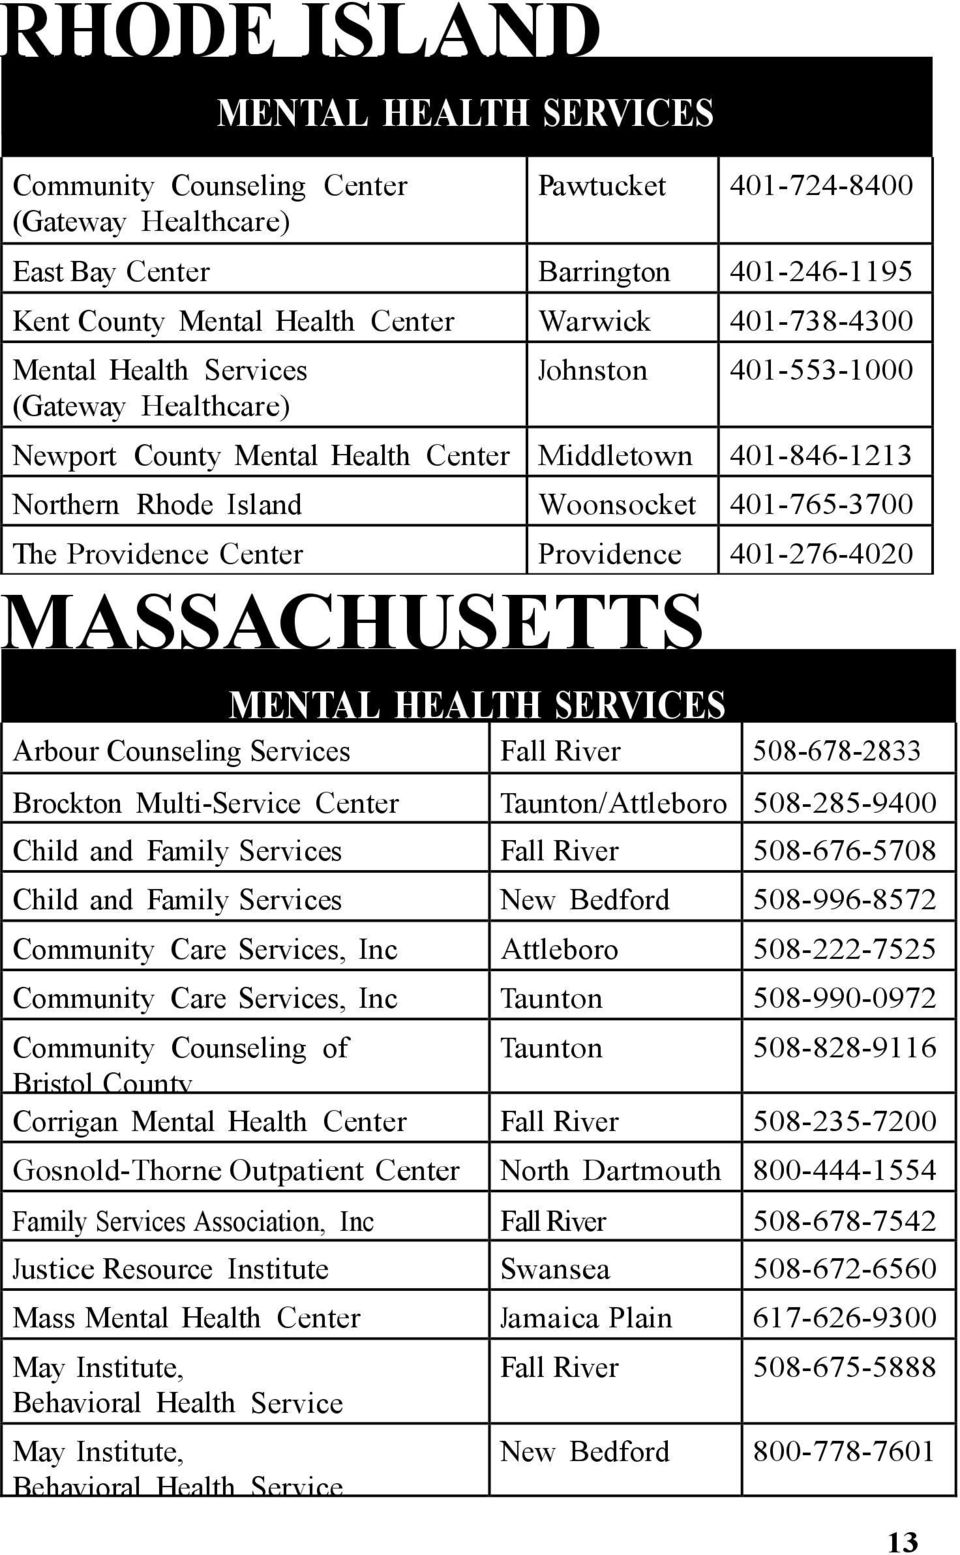 Center Providence 401-276-4020 MASSACHUSETTS MENTAL HEALTH SERVICES Arbour Counseling Services Fall River 508-678-2833 Brockton Multi-Service Center Taunton/Attleboro 508-285-9400 Child and Family